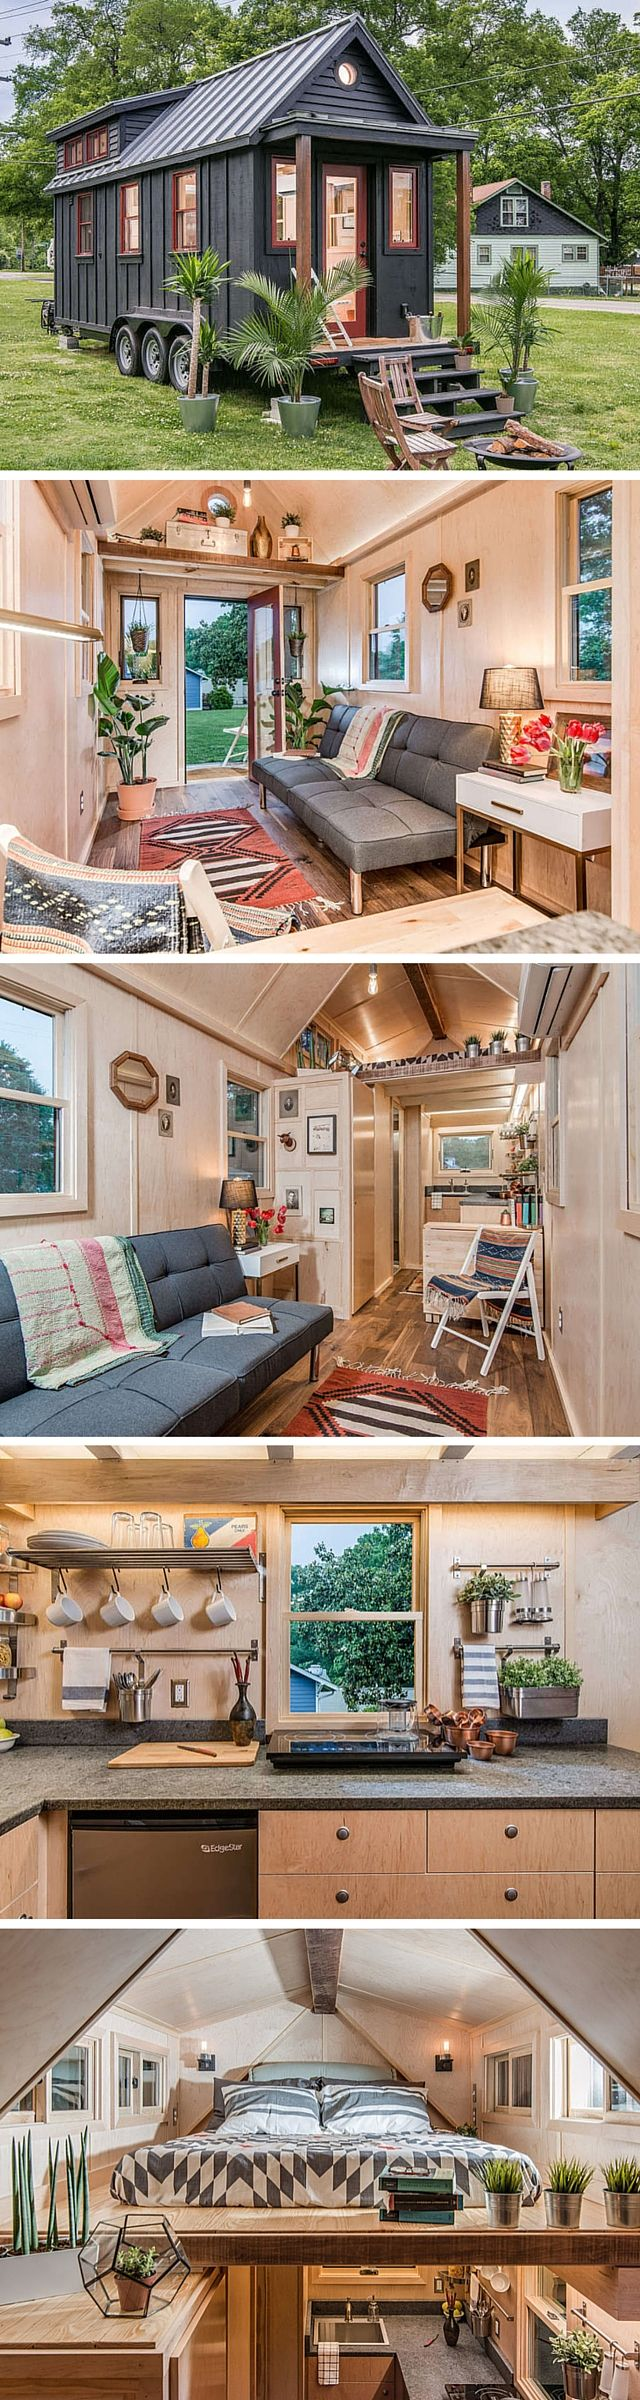 View toward kitchen the alpha tiny home by new frontier tiny homes - The Riverside Tiny House By New Frontier Tiny Homes A 246 Sq Ft Home With